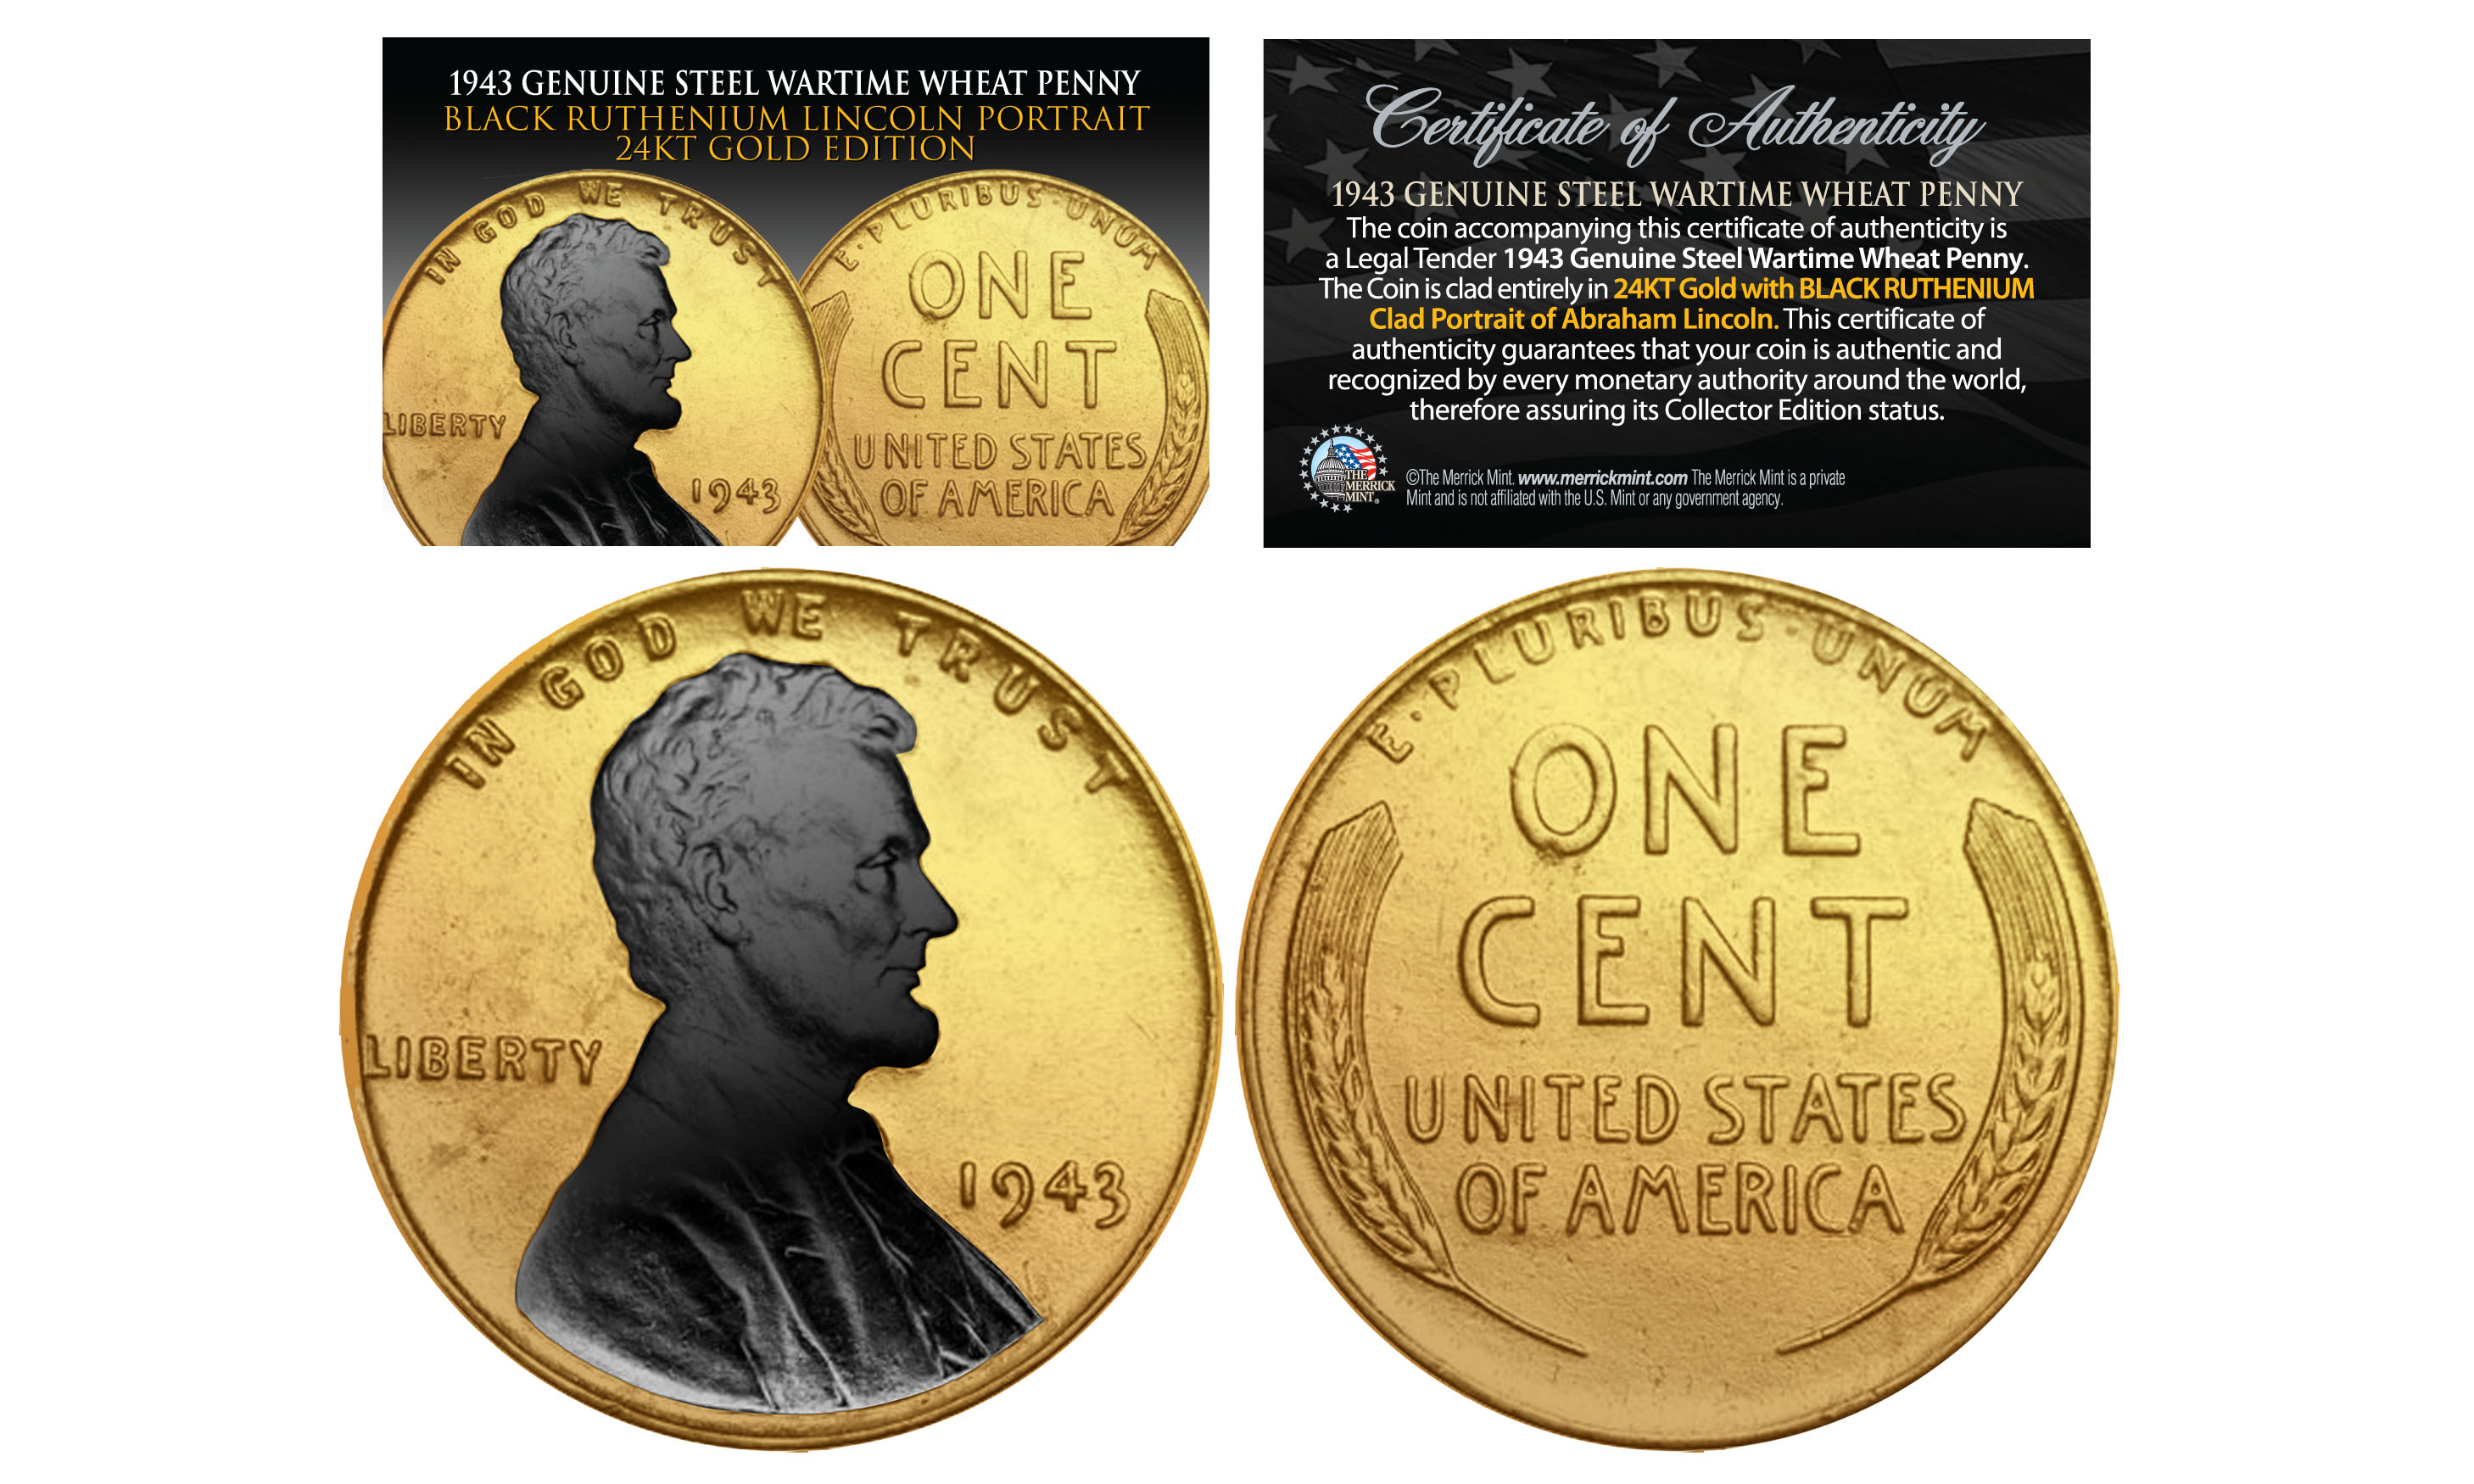 1943 gold plated steel wartime wheat penny coin with black ruthenium 1943 gold plated steel wartime wheat penny coin with black ruthenium lincoln publicscrutiny Images